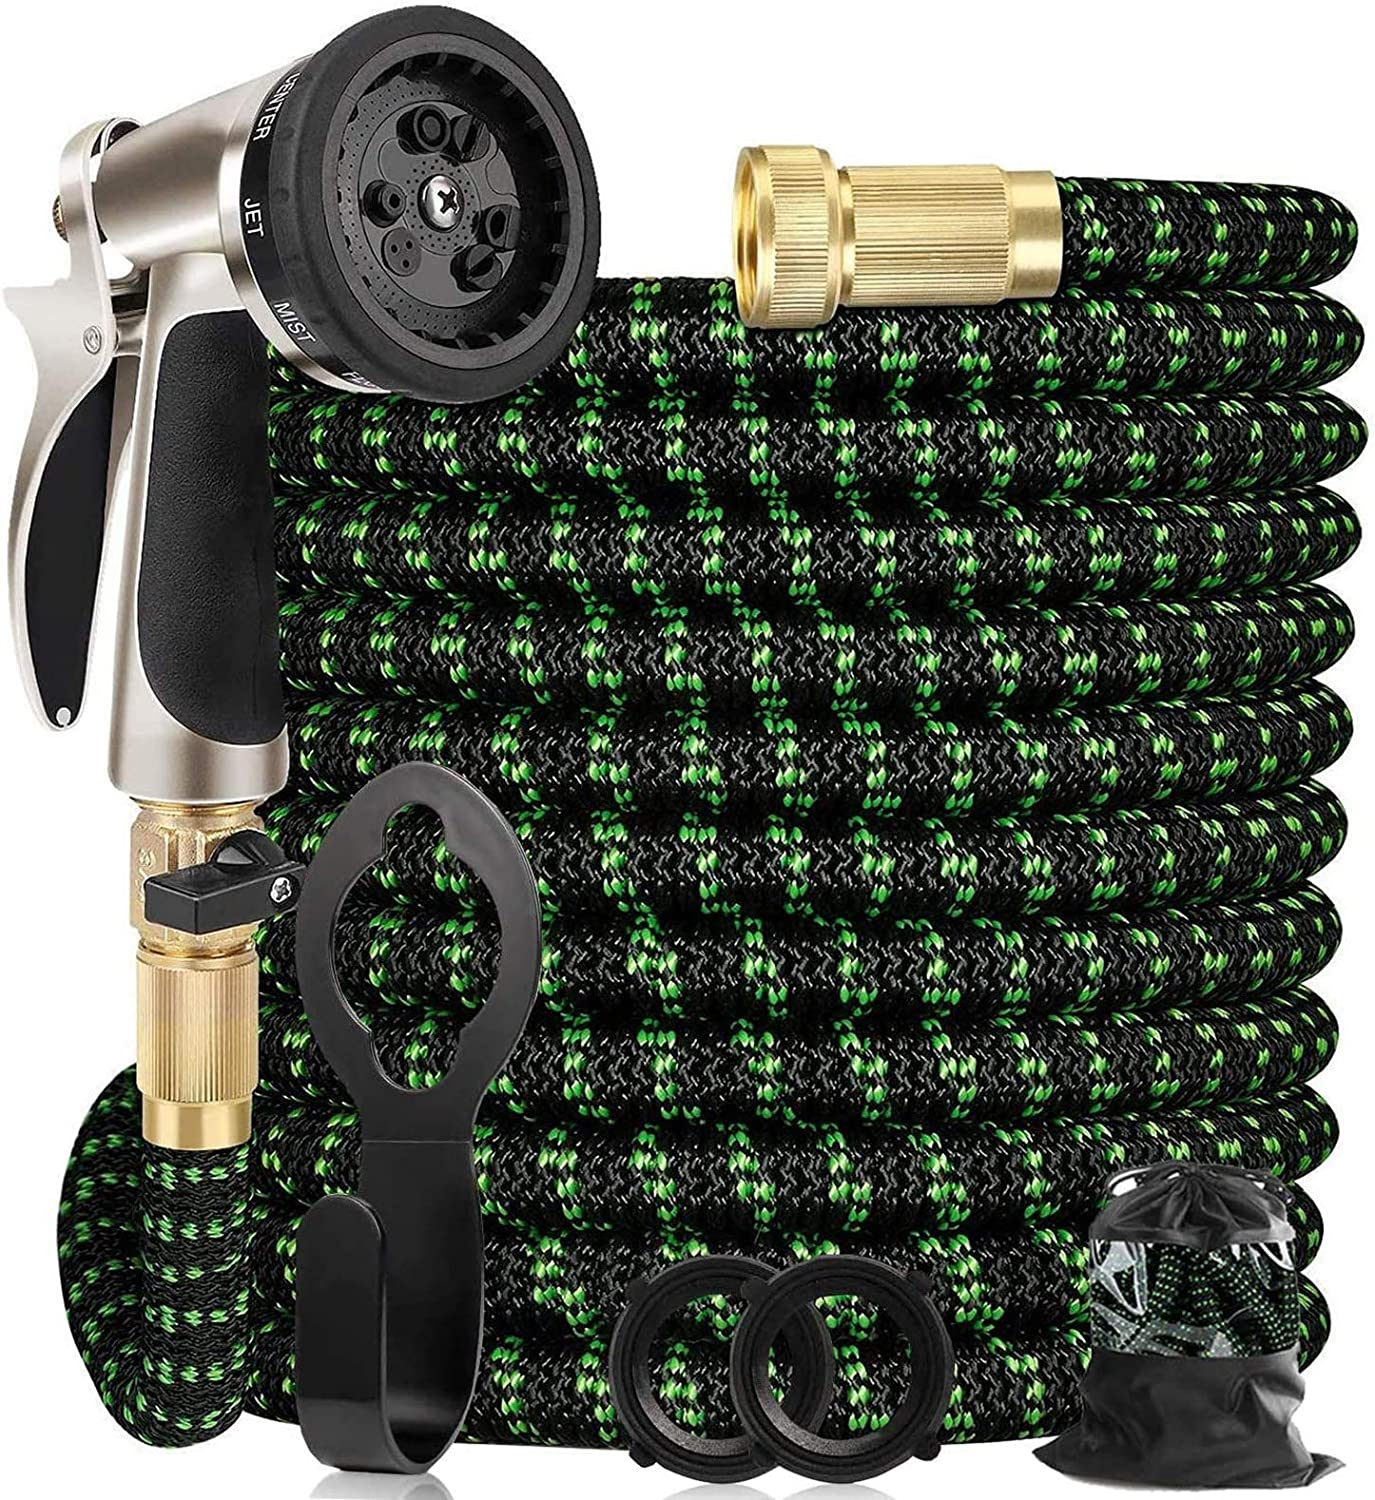 "Haliluya Garden Hose 100FT, Expandable Garden Hose & 9 Function Spray Nozzle 100 FT Lightweight Water Hose with Durable 4-Layers Latex | Extra Strength 3750D Fabric | 3/4"" Solid Brass Connectors"